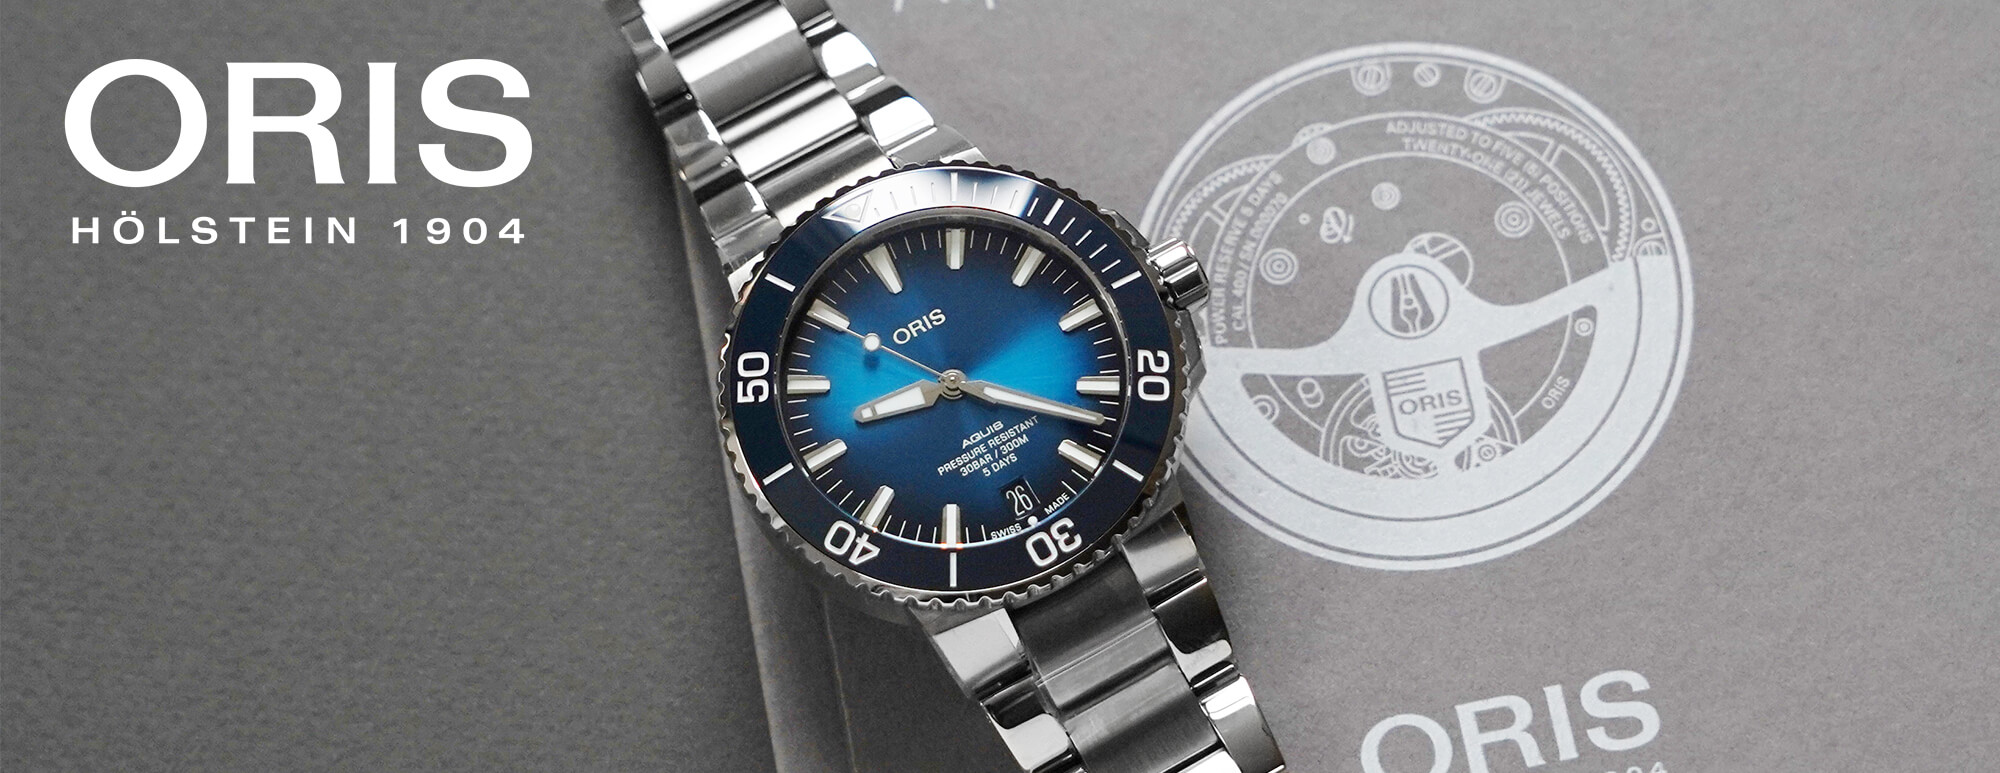 oris-mini-banner-caliber-400